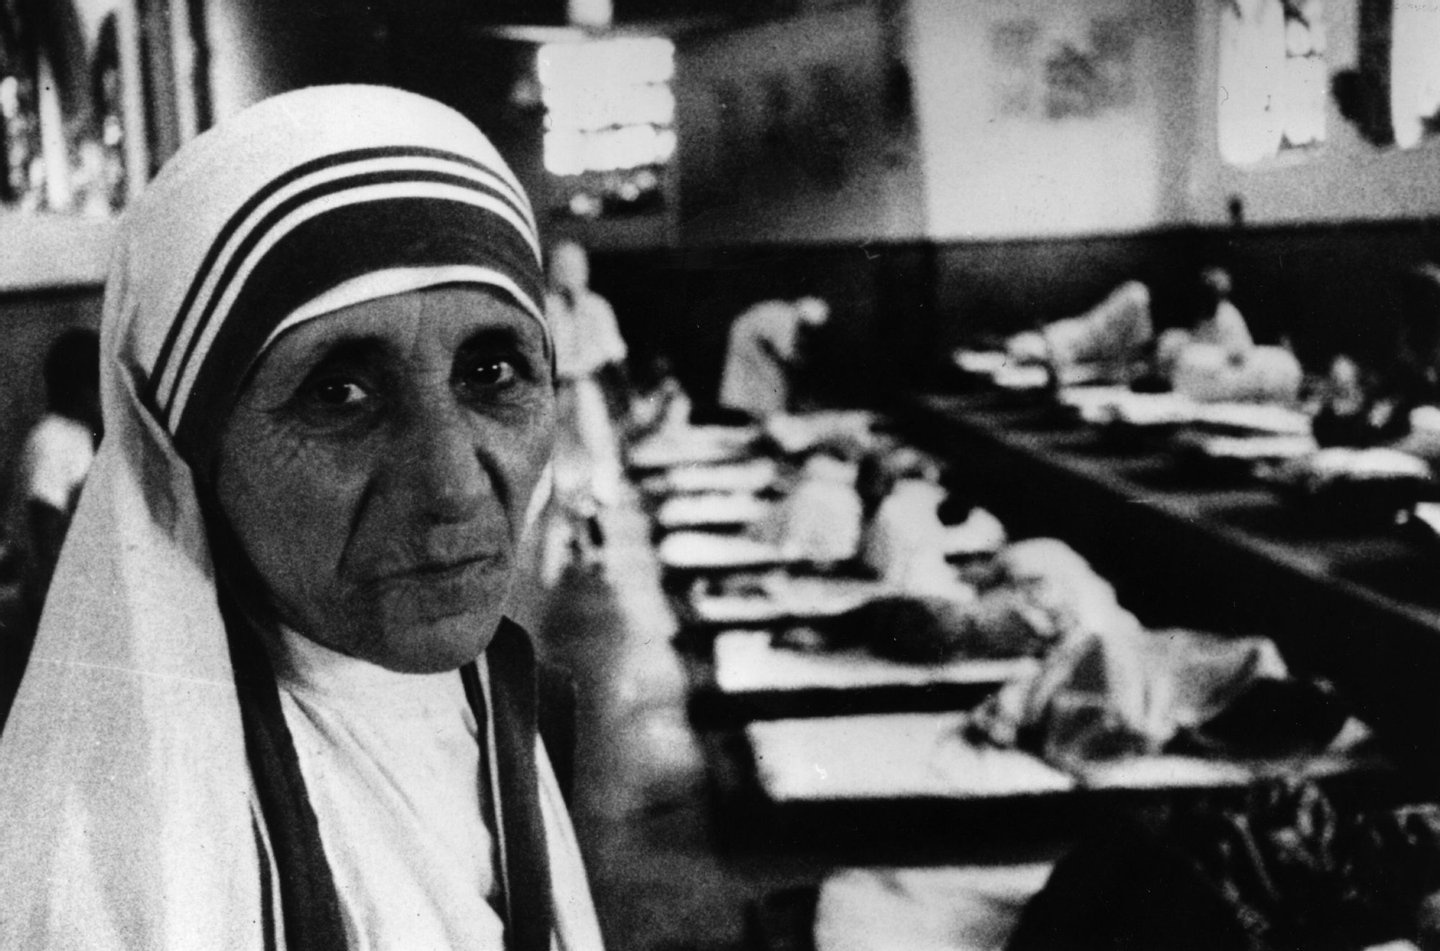 Charity worker Mother Teresa (1910 - 1997), seen in her hospital around the time she was awarded the Templeton Prize for Progress. (Photo by Mark Edwards/Keystone Features/Getty Images)